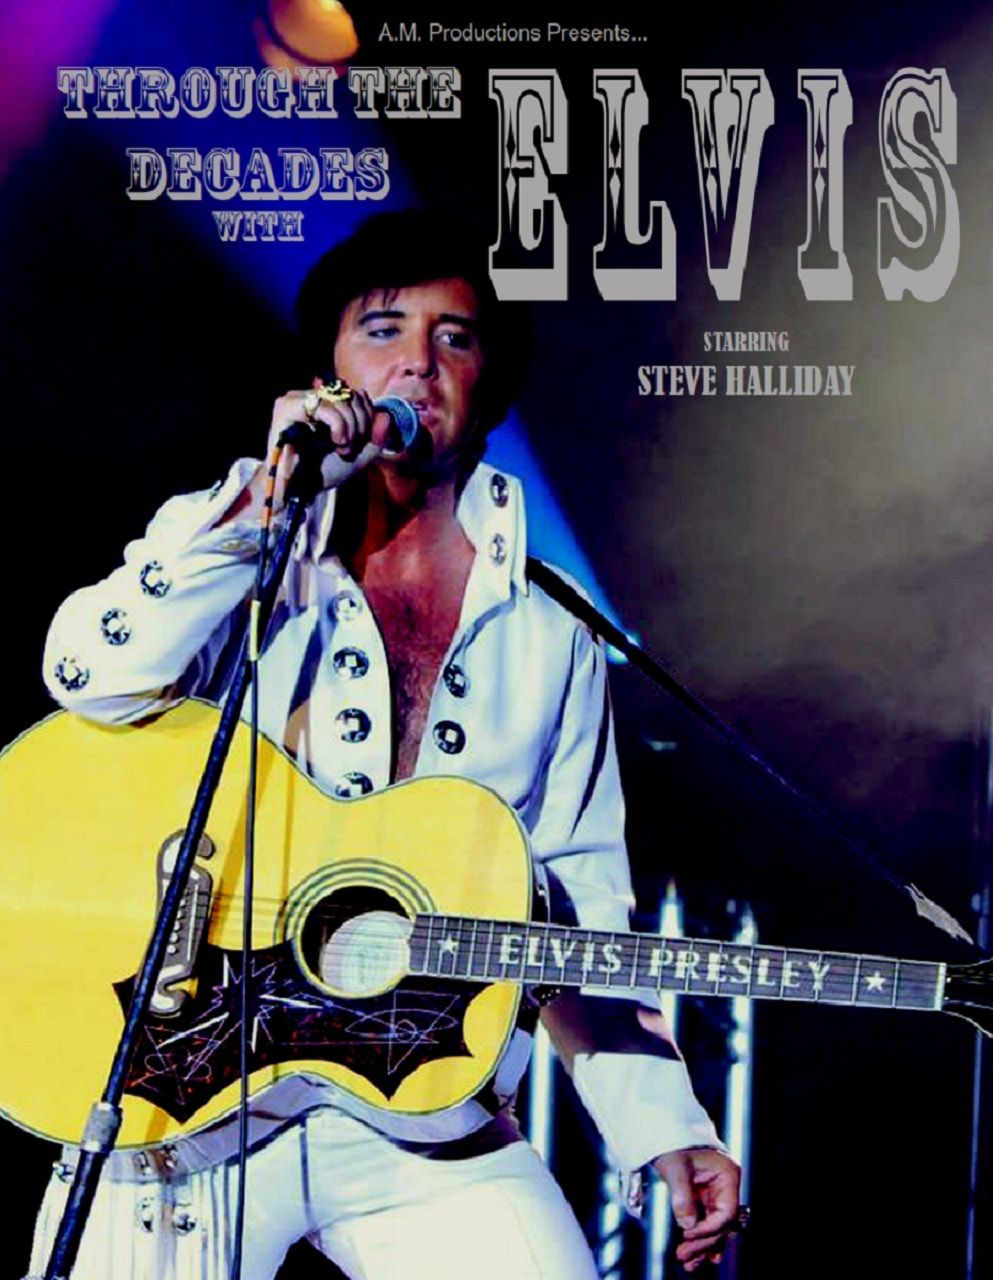 Poster for 'Through The Decades With Elvis'